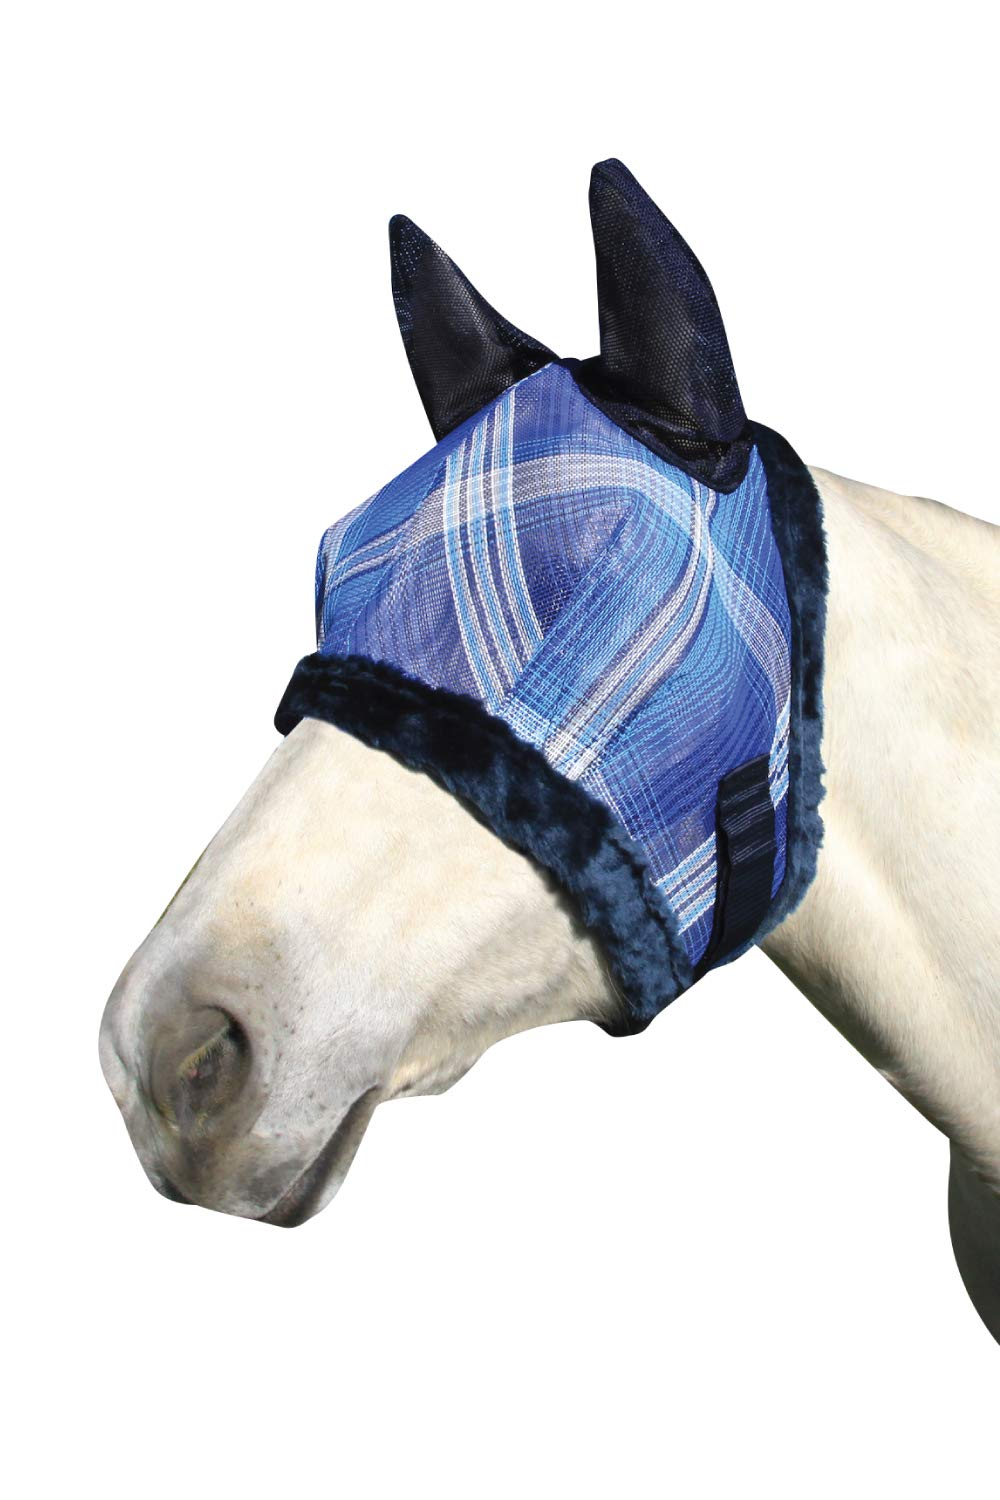 Kensington Pony Fly Mask with Soft Ears and Fleece Trim - Protects Face and Ears from Biting Insects and UV Rays While Allowing Full Visibility (P, Kentucky Blue Plaid)